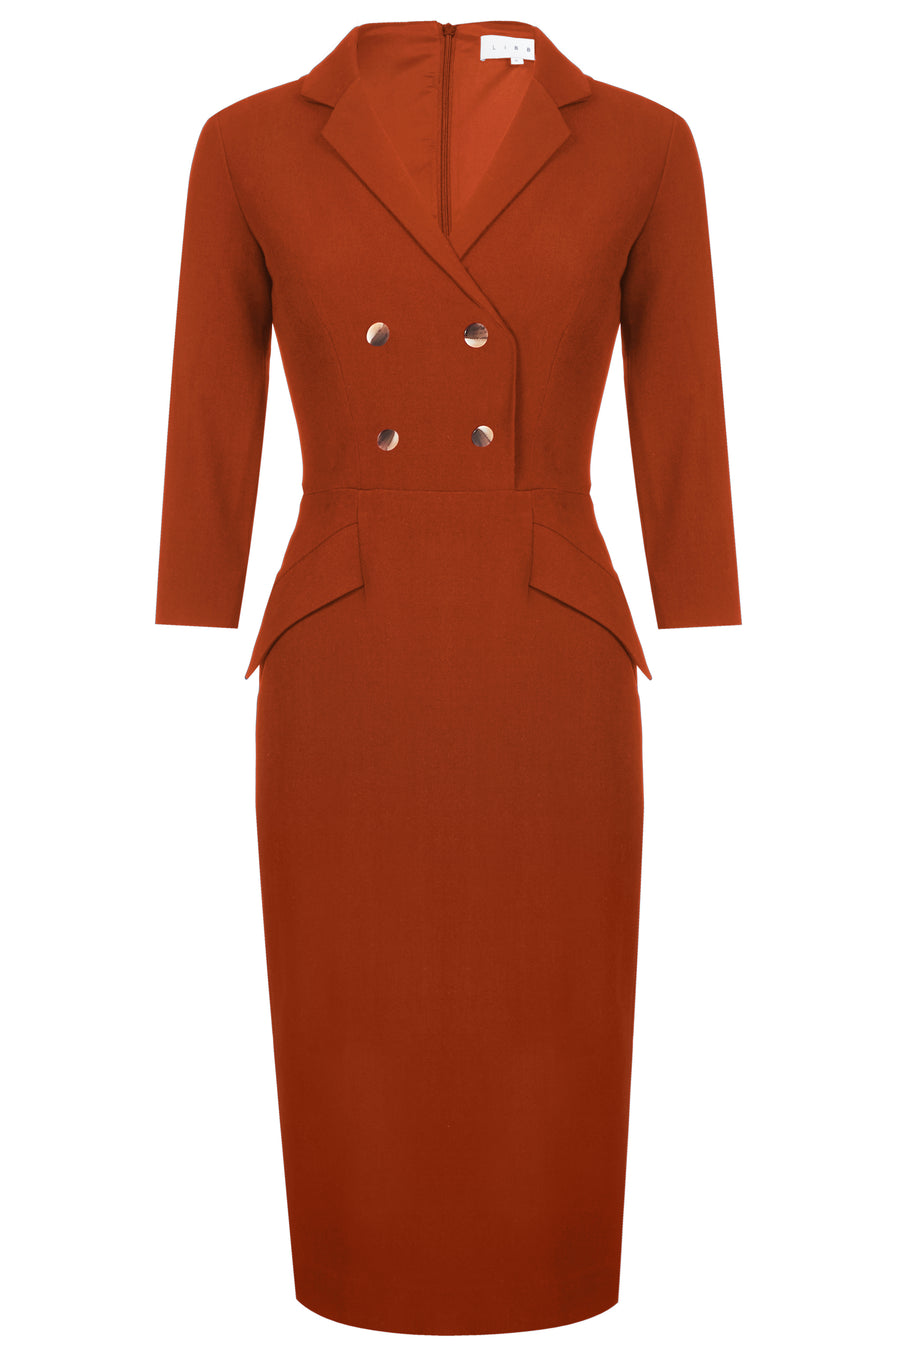 Oxford Terracotta Dress